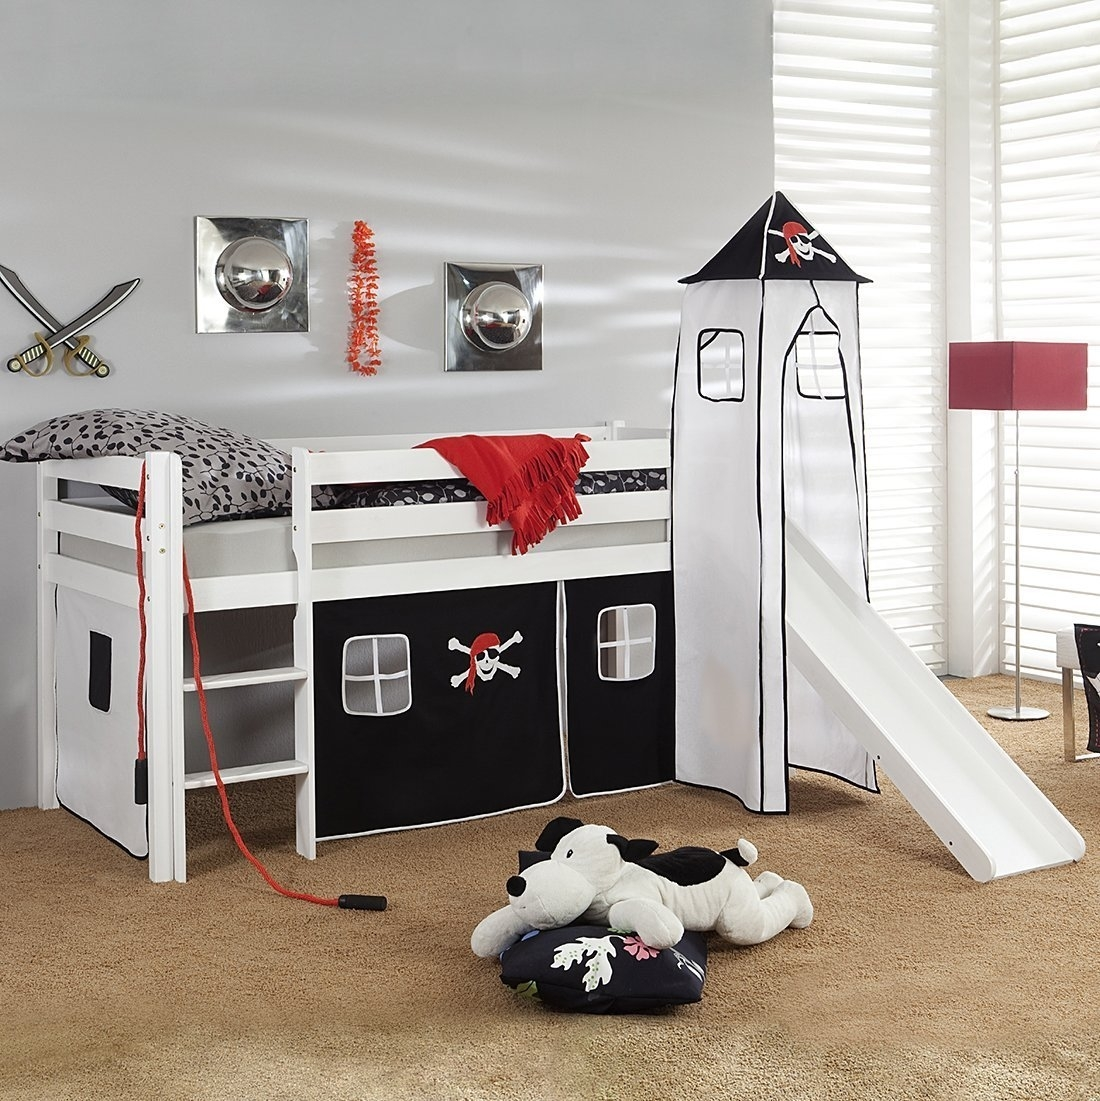 kinder hochbett aruba piratenbett mit turm und rutsche von. Black Bedroom Furniture Sets. Home Design Ideas